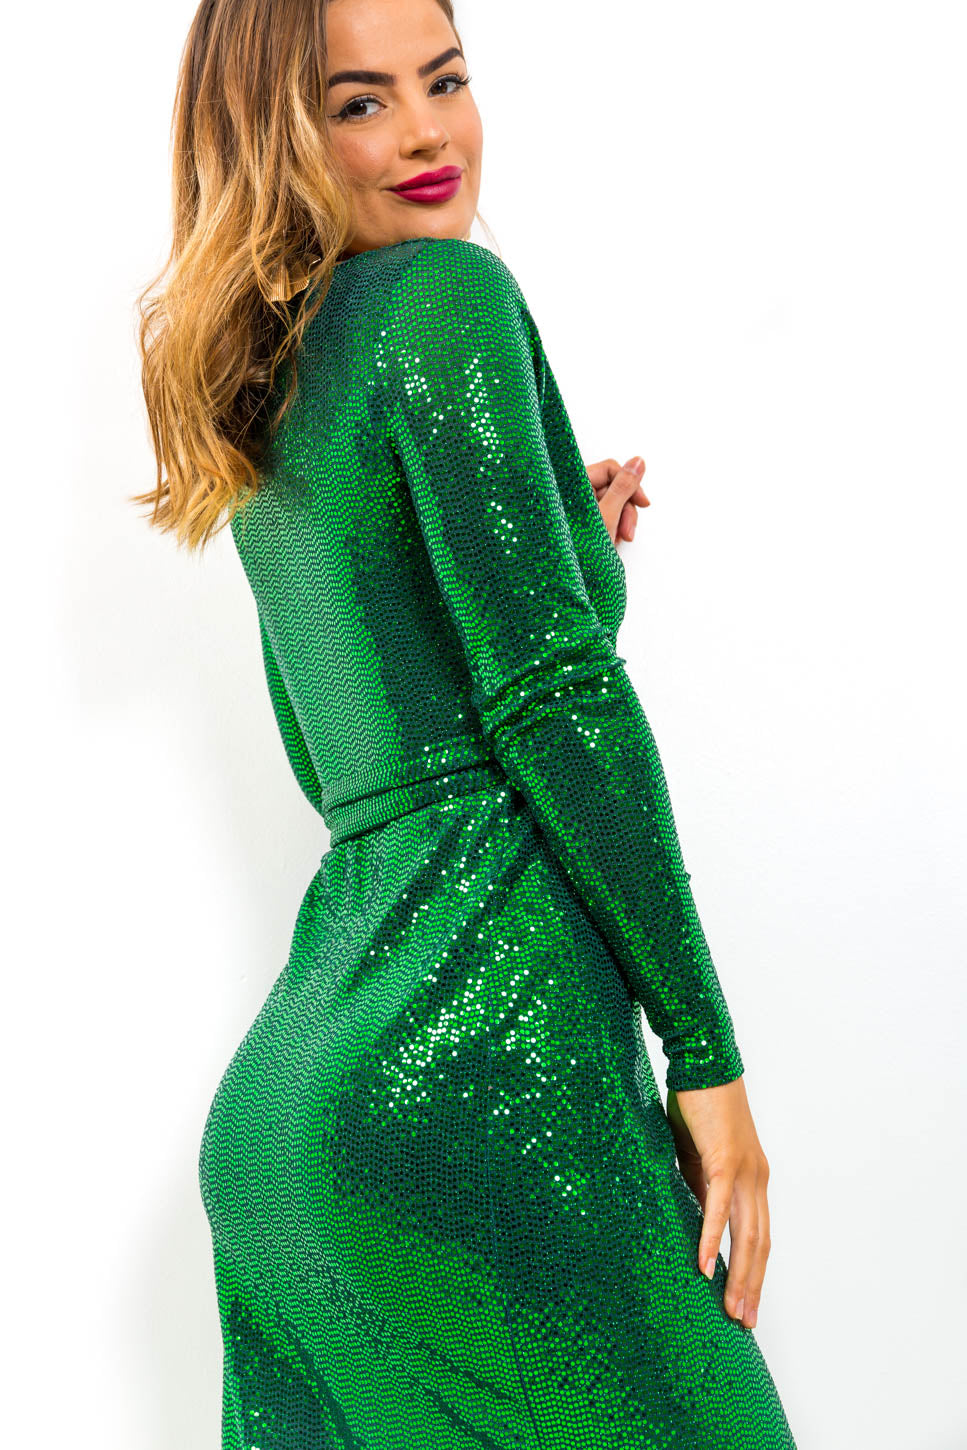 Sparks Fly - Dress In GREEN/MIRROR